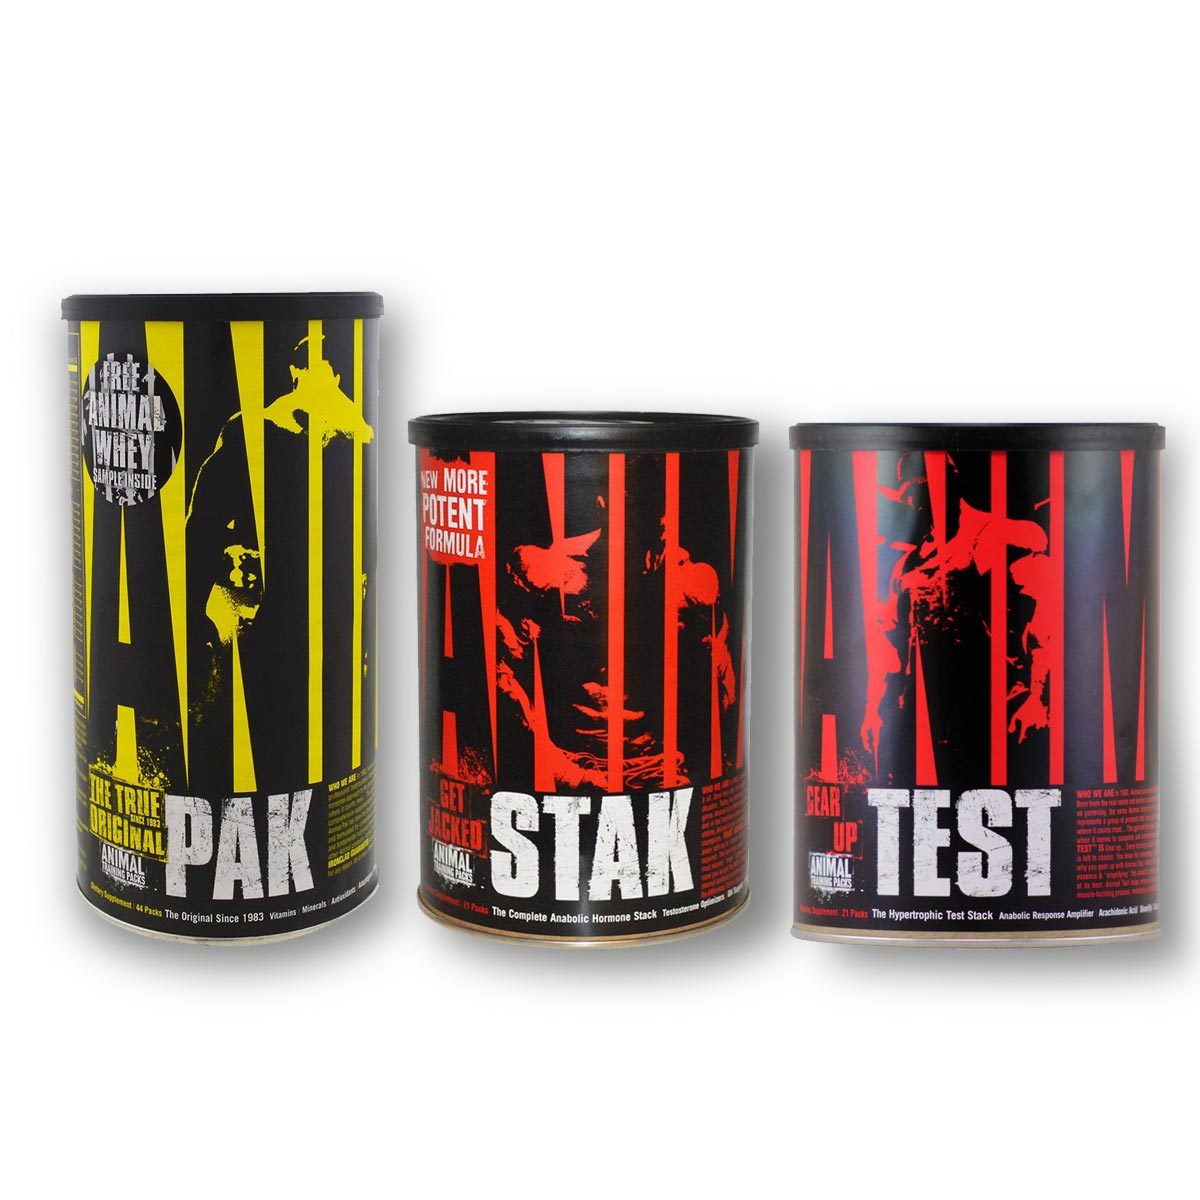 All Stars Pump Booster Test universal nutrition animal test explosion stack